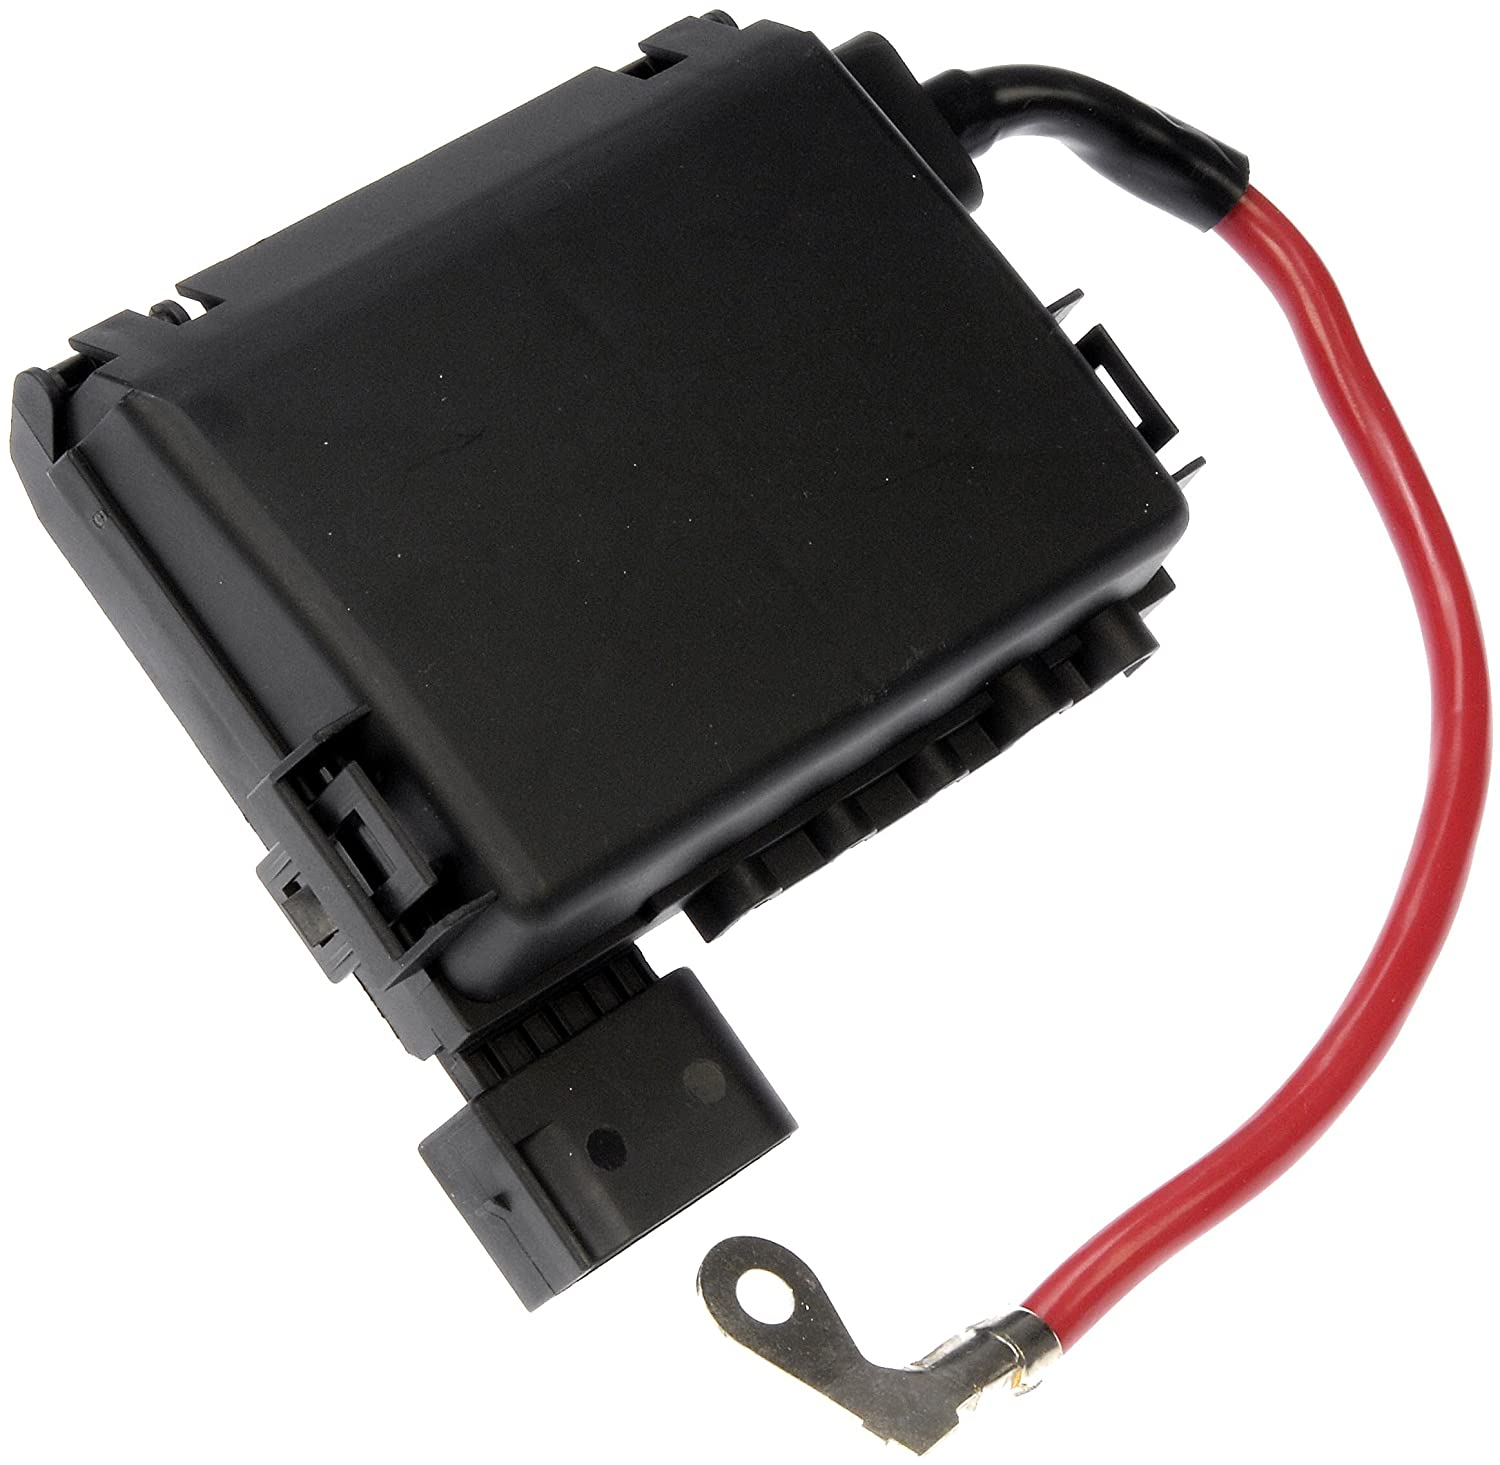 81KRR71TRiL._SL1500_ amazon com dorman 924 681 voltage fuse box automotive 2002 VW Beetle Fuse Box Diagram at n-0.co